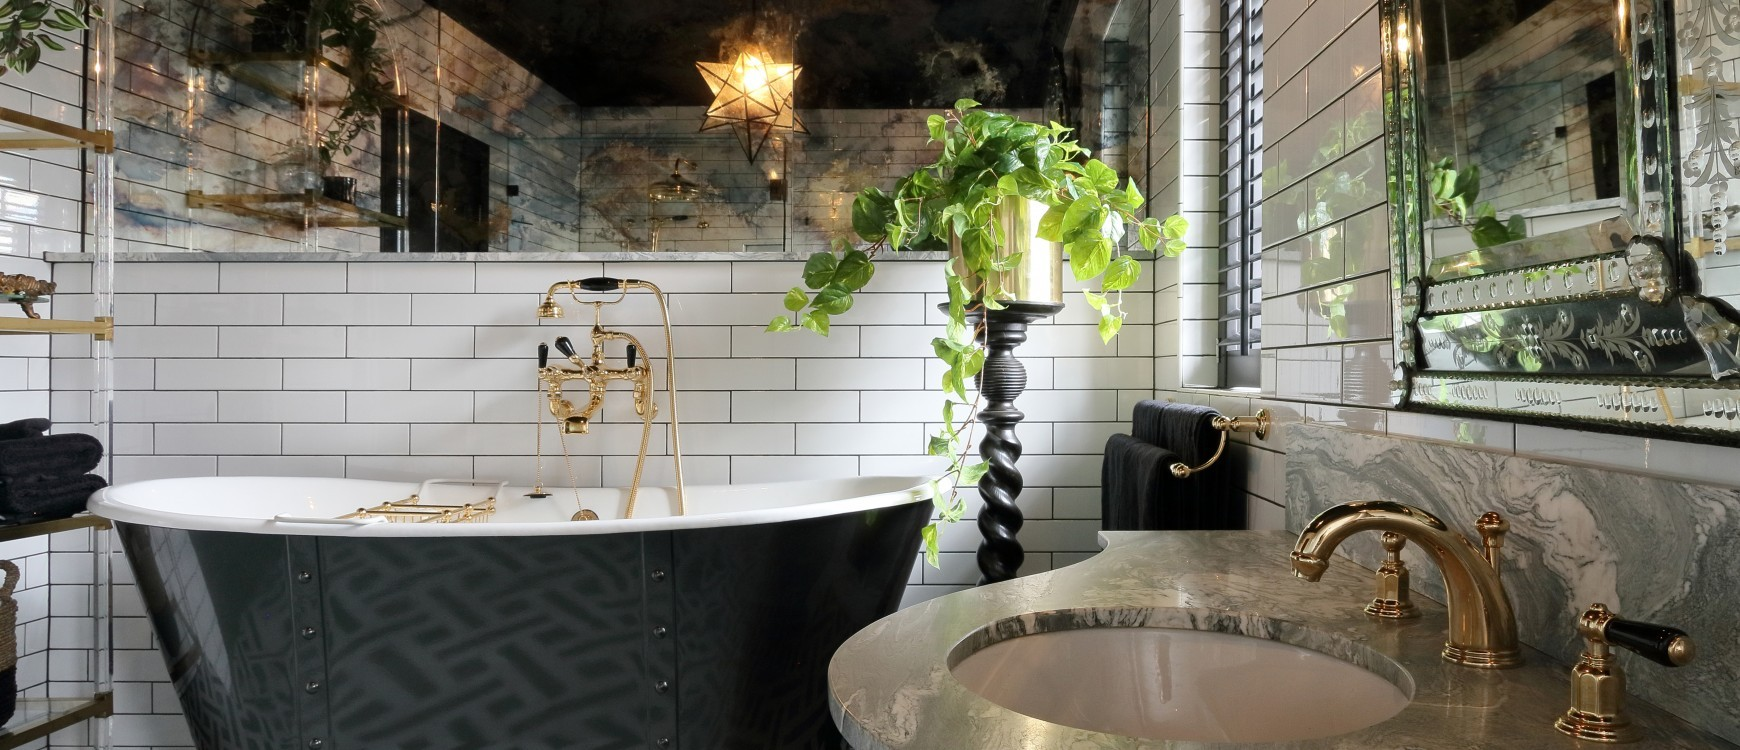 Hollywood Regency Inspired Bathroom Design In This